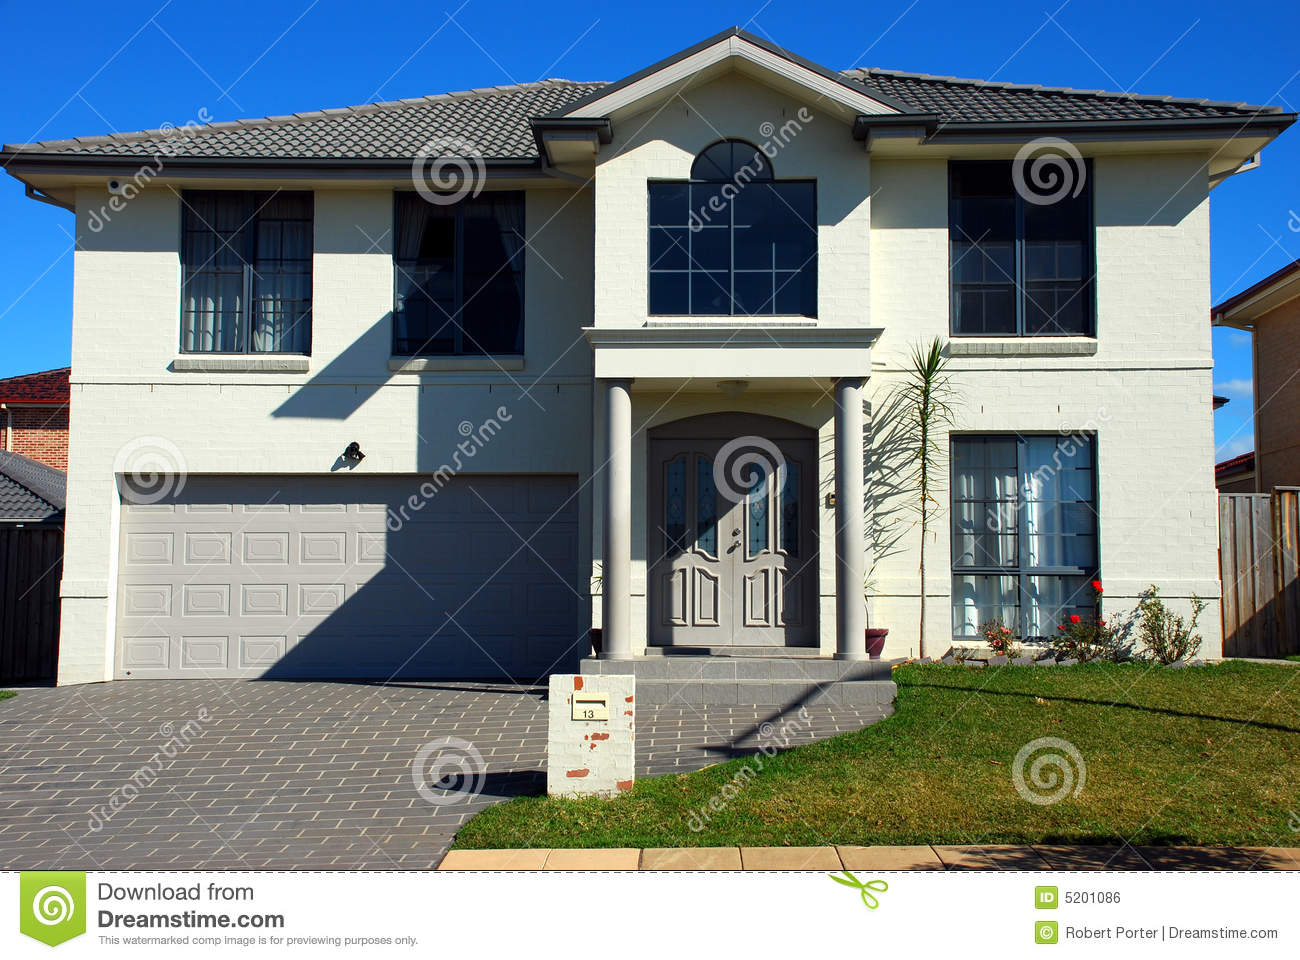 Modern house unlucky number royalty free stock image image 5201086 Unlucky house